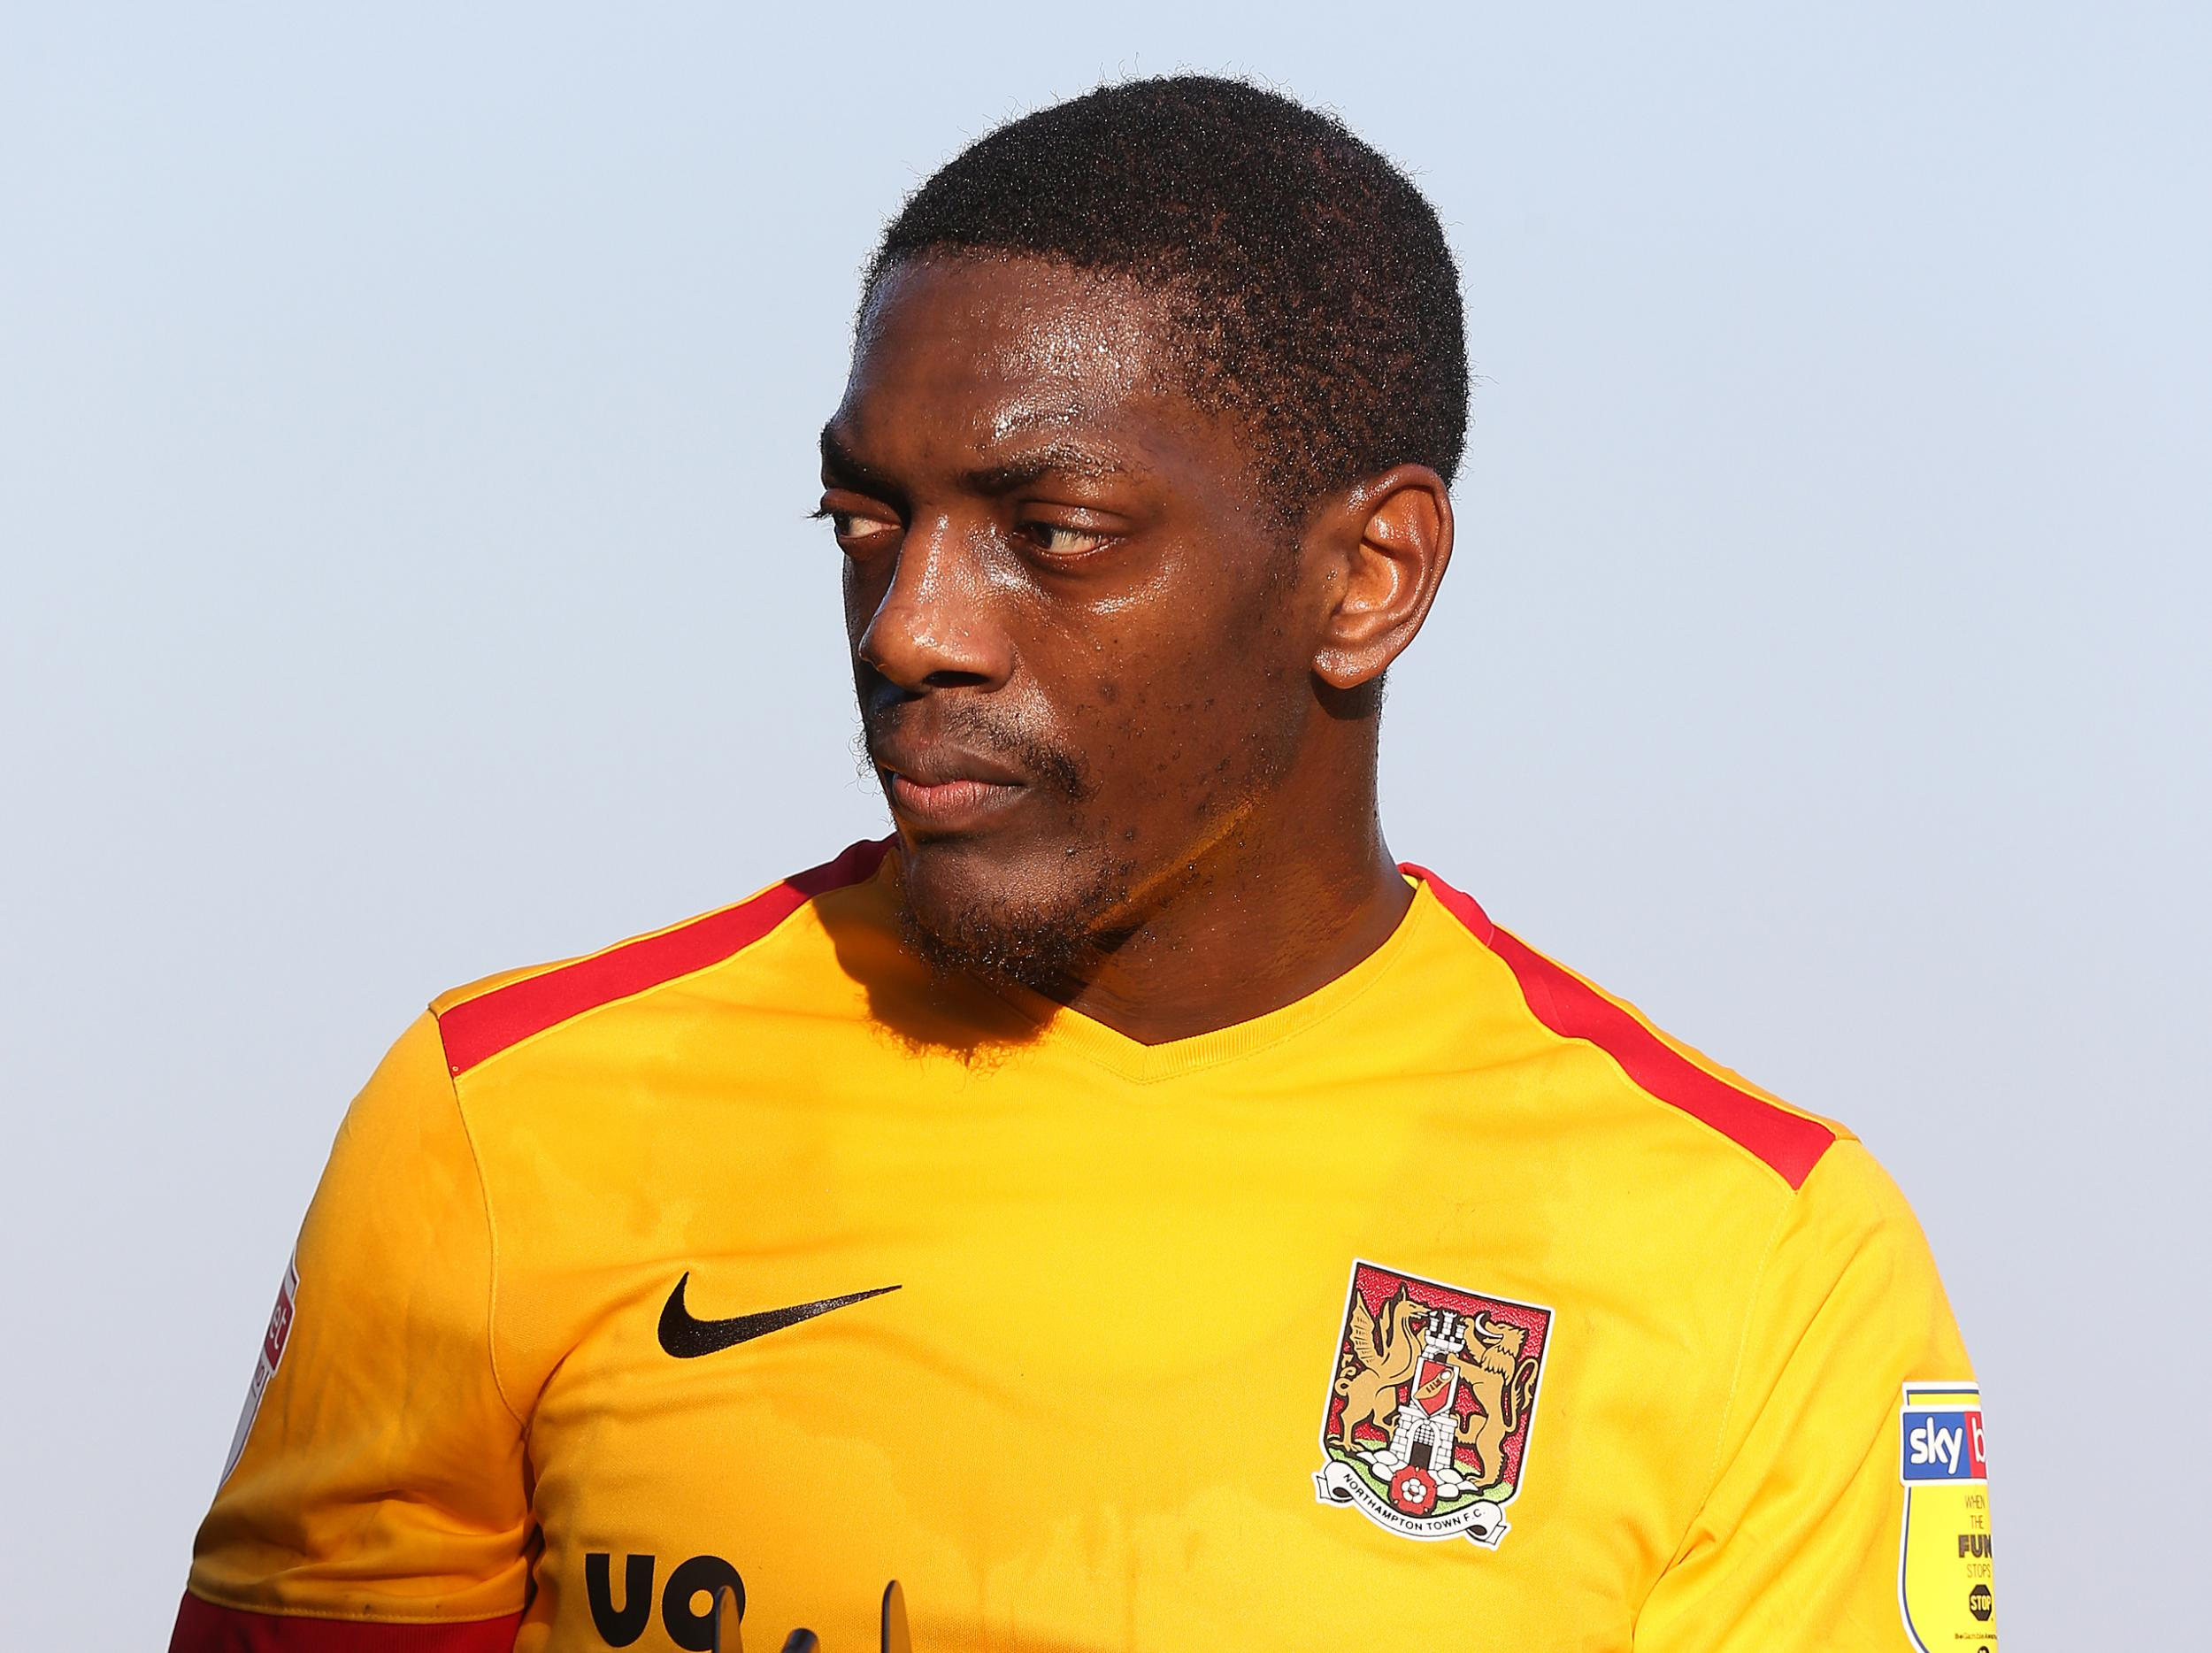 Marvin Sordell urges club bosses to give BAME manager candidates interviews